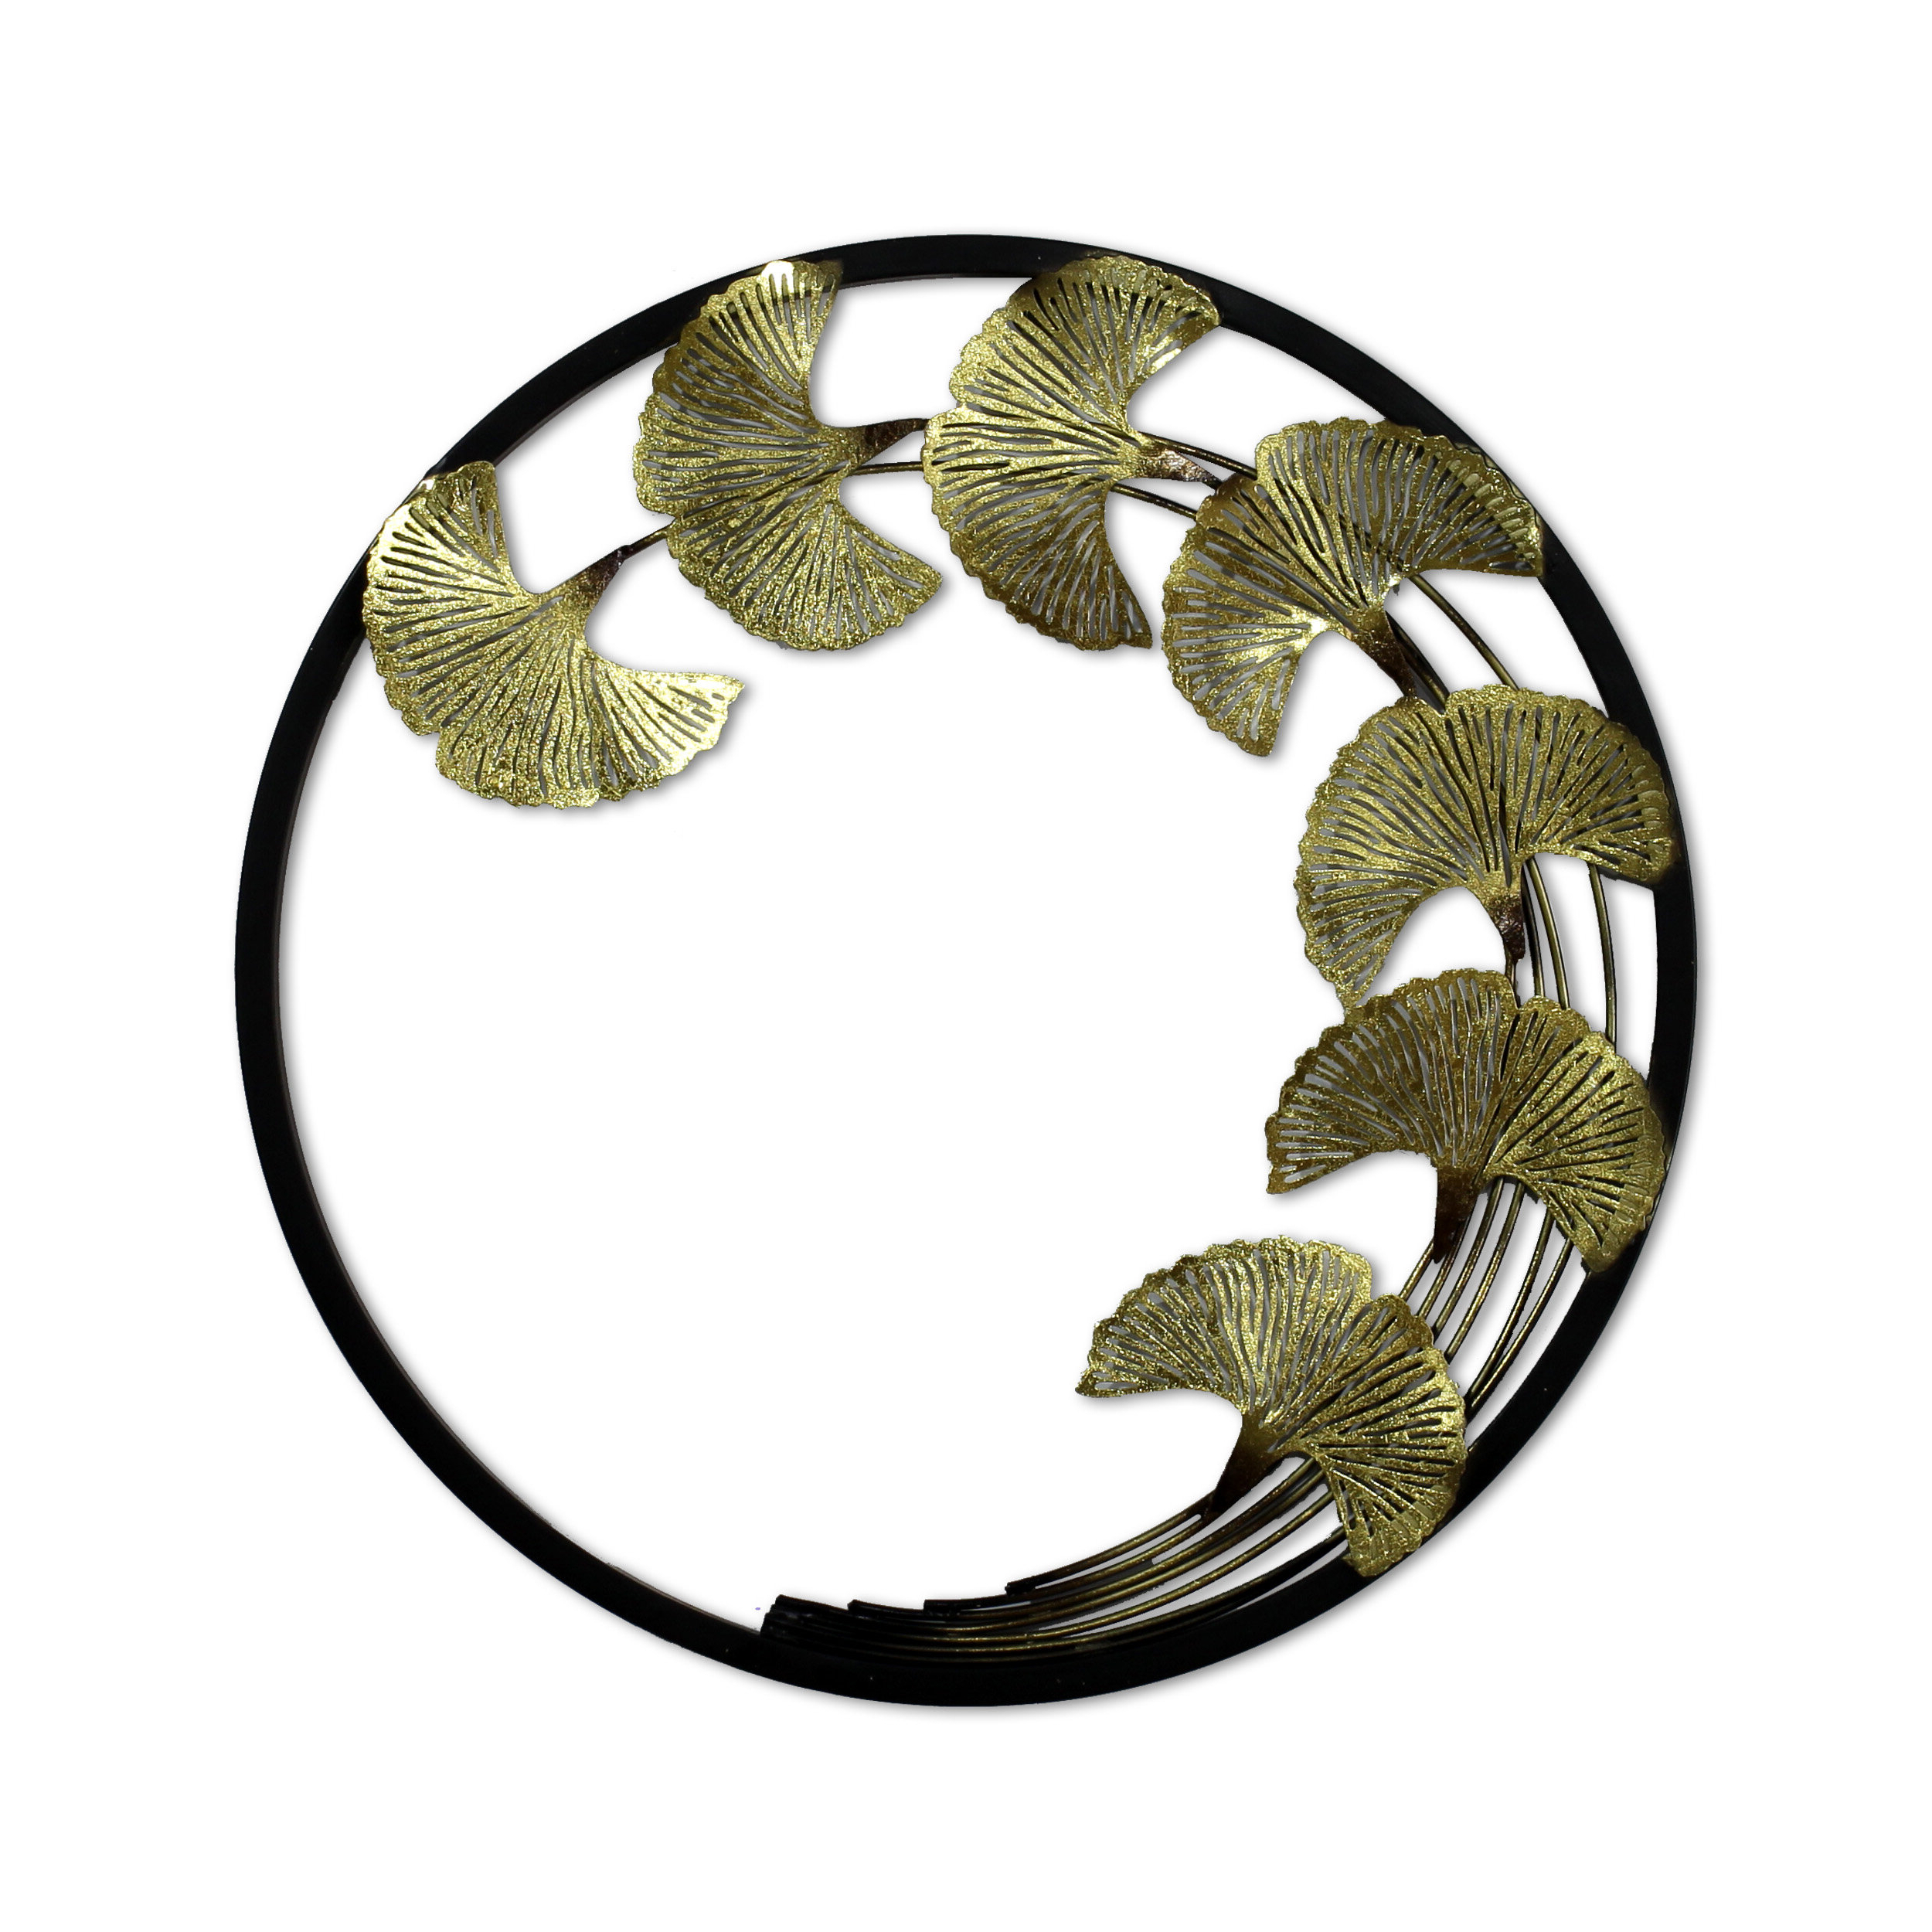 Believe Metal Wall Décor By Red Barrel Studio For Latest Red Barrel Studio Golden Leaves In Black Ring Decorative Metal Wall Sculpture Art Handging Décor (View 4 of 20)